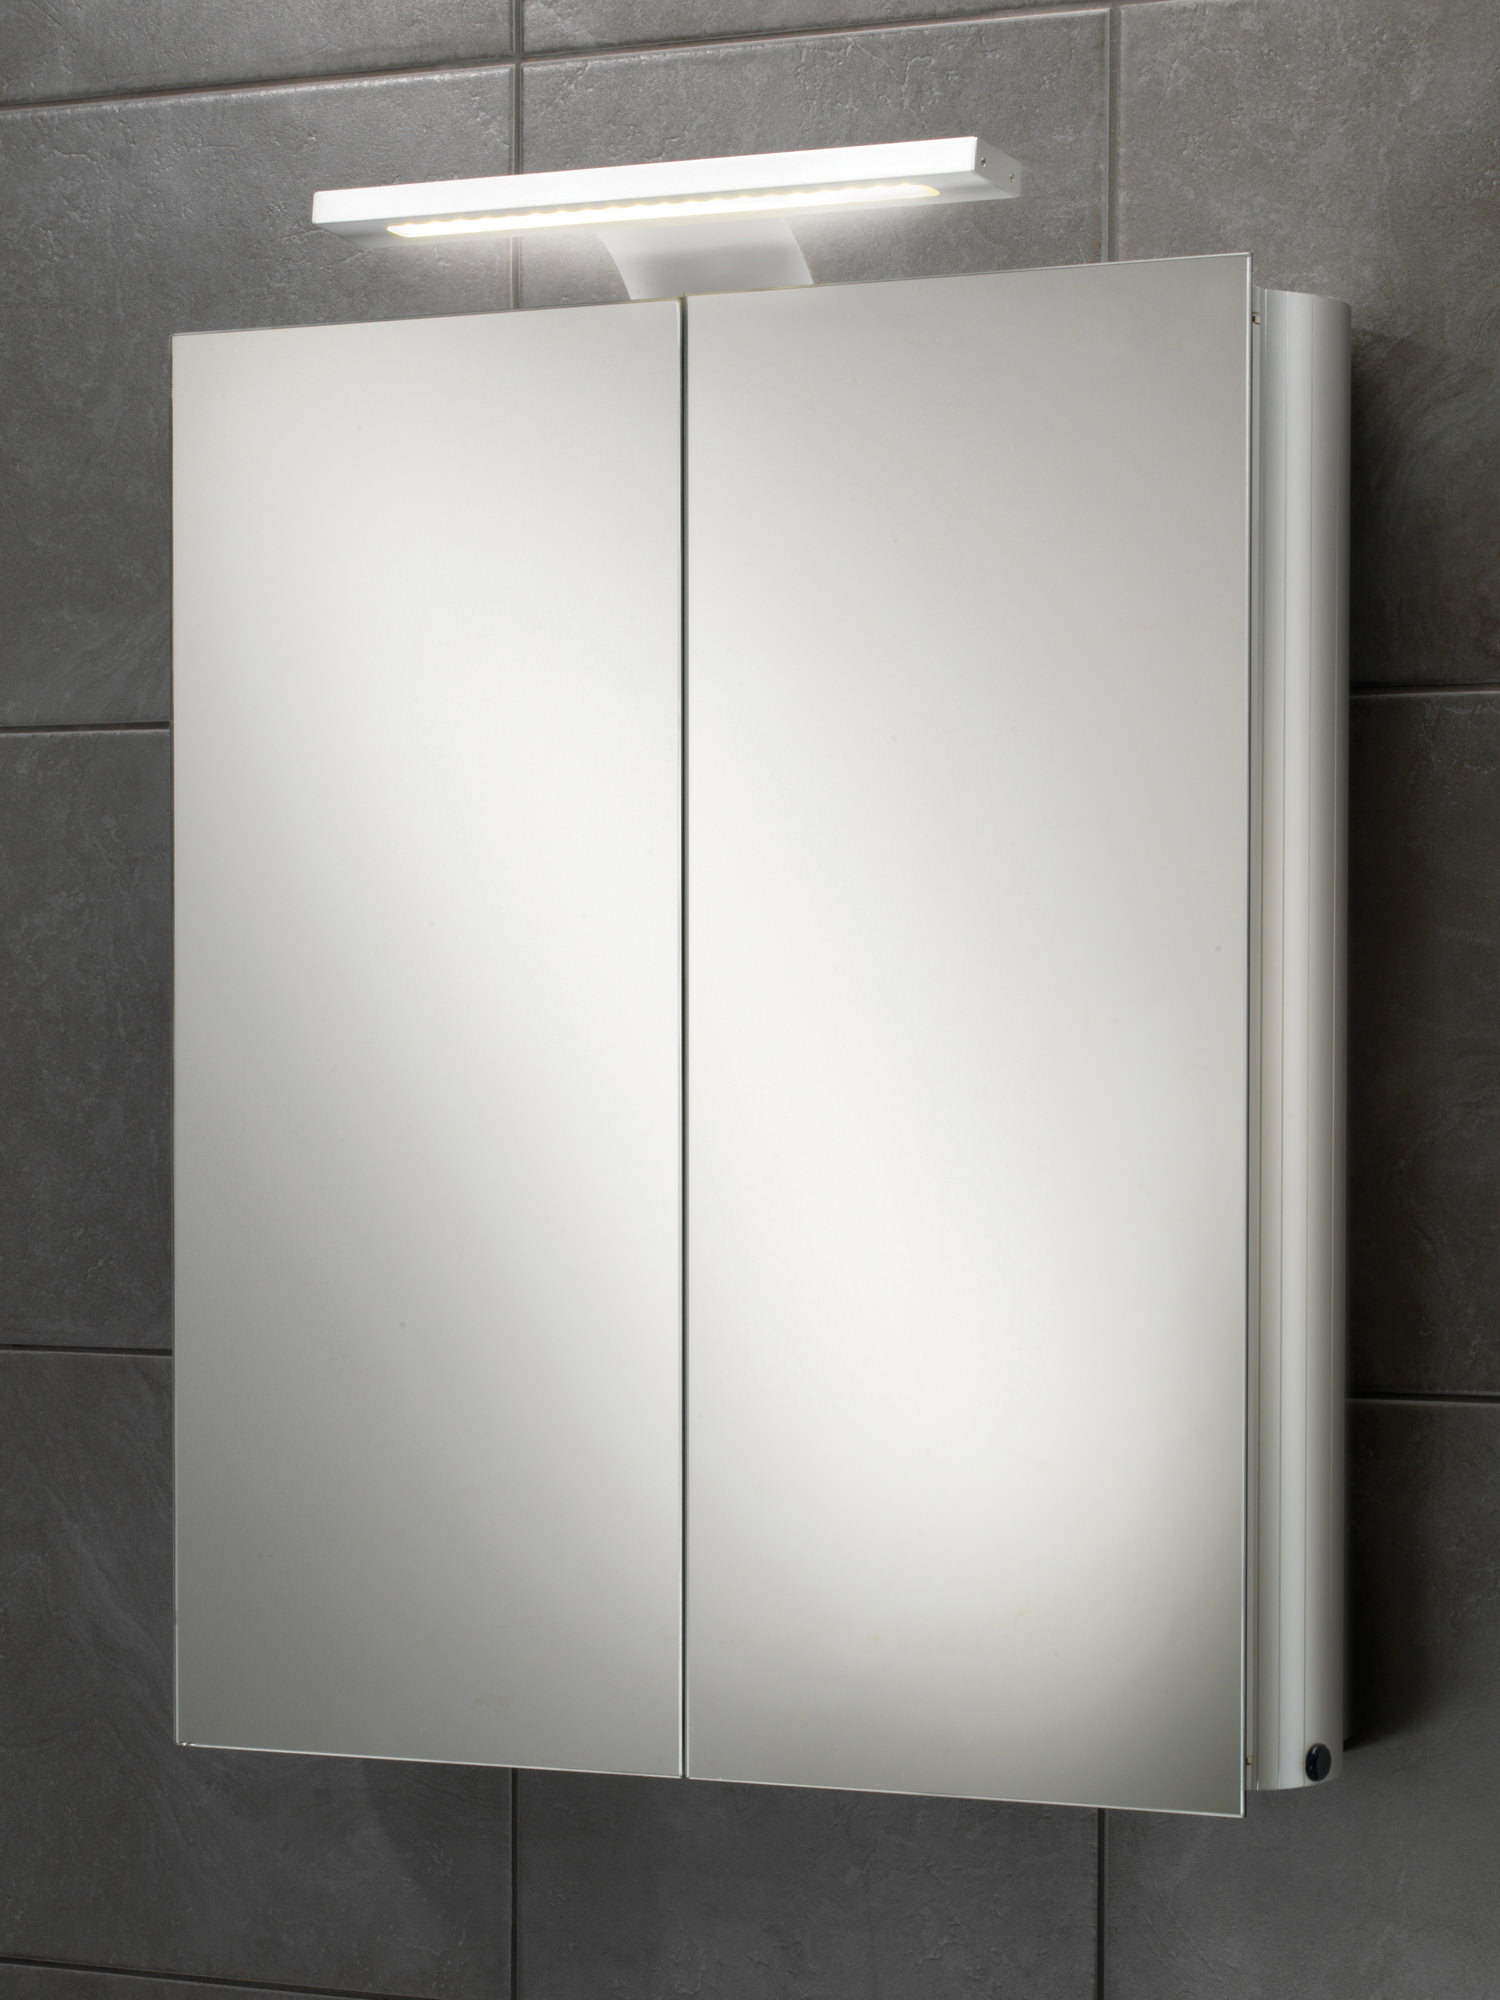 Bathroom Cabinets 500mm Wide shop for bathroom mirrored cabinets at qs supplies